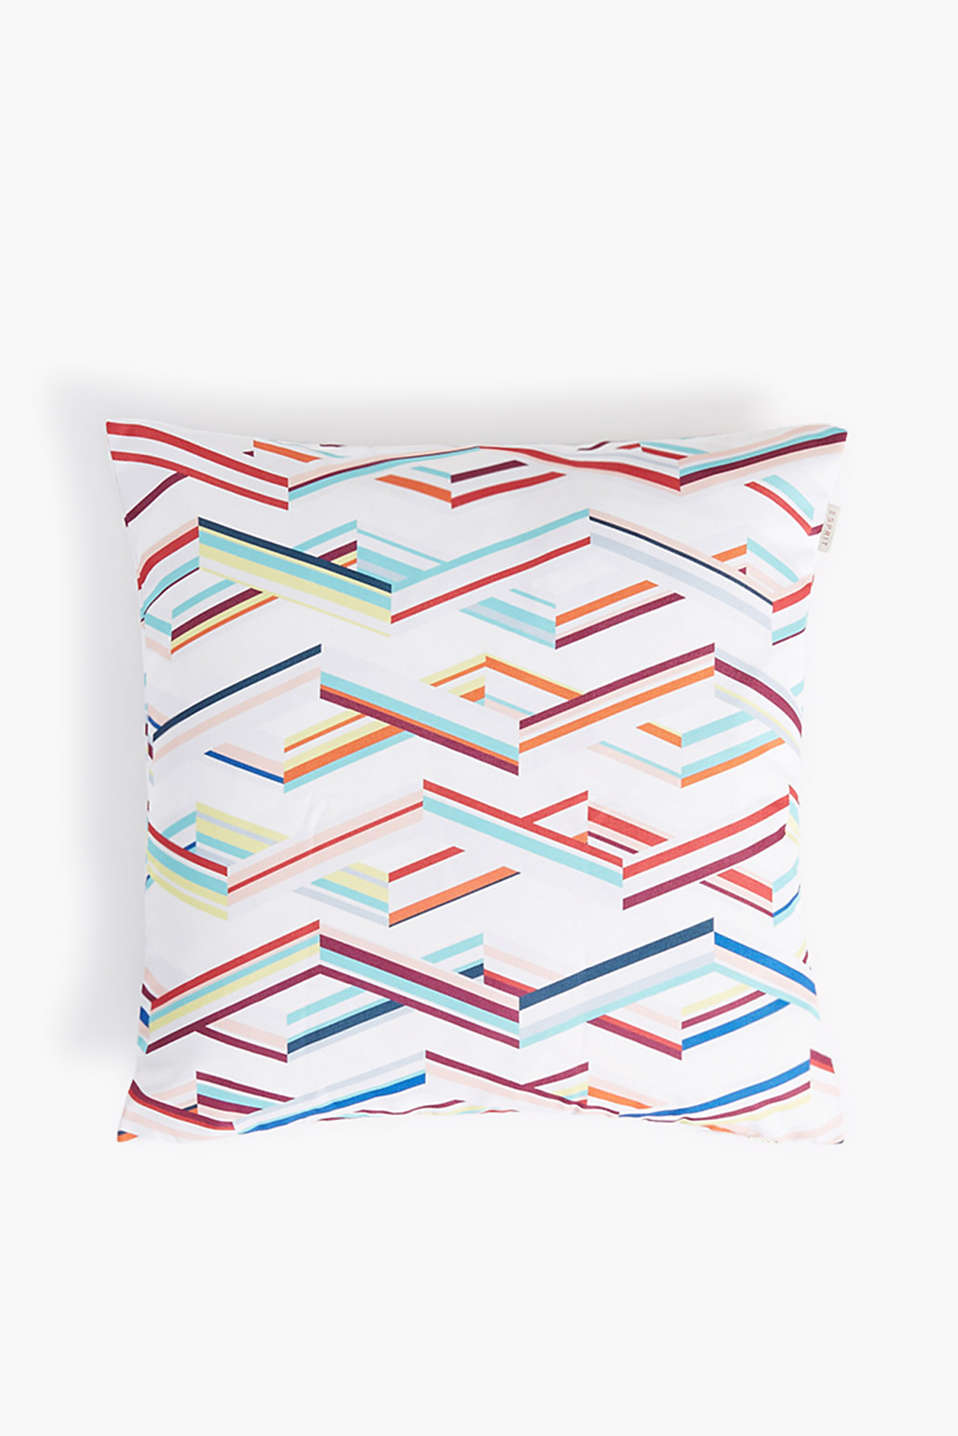 Cushion cover with a colourful zigzag pattern in a square format